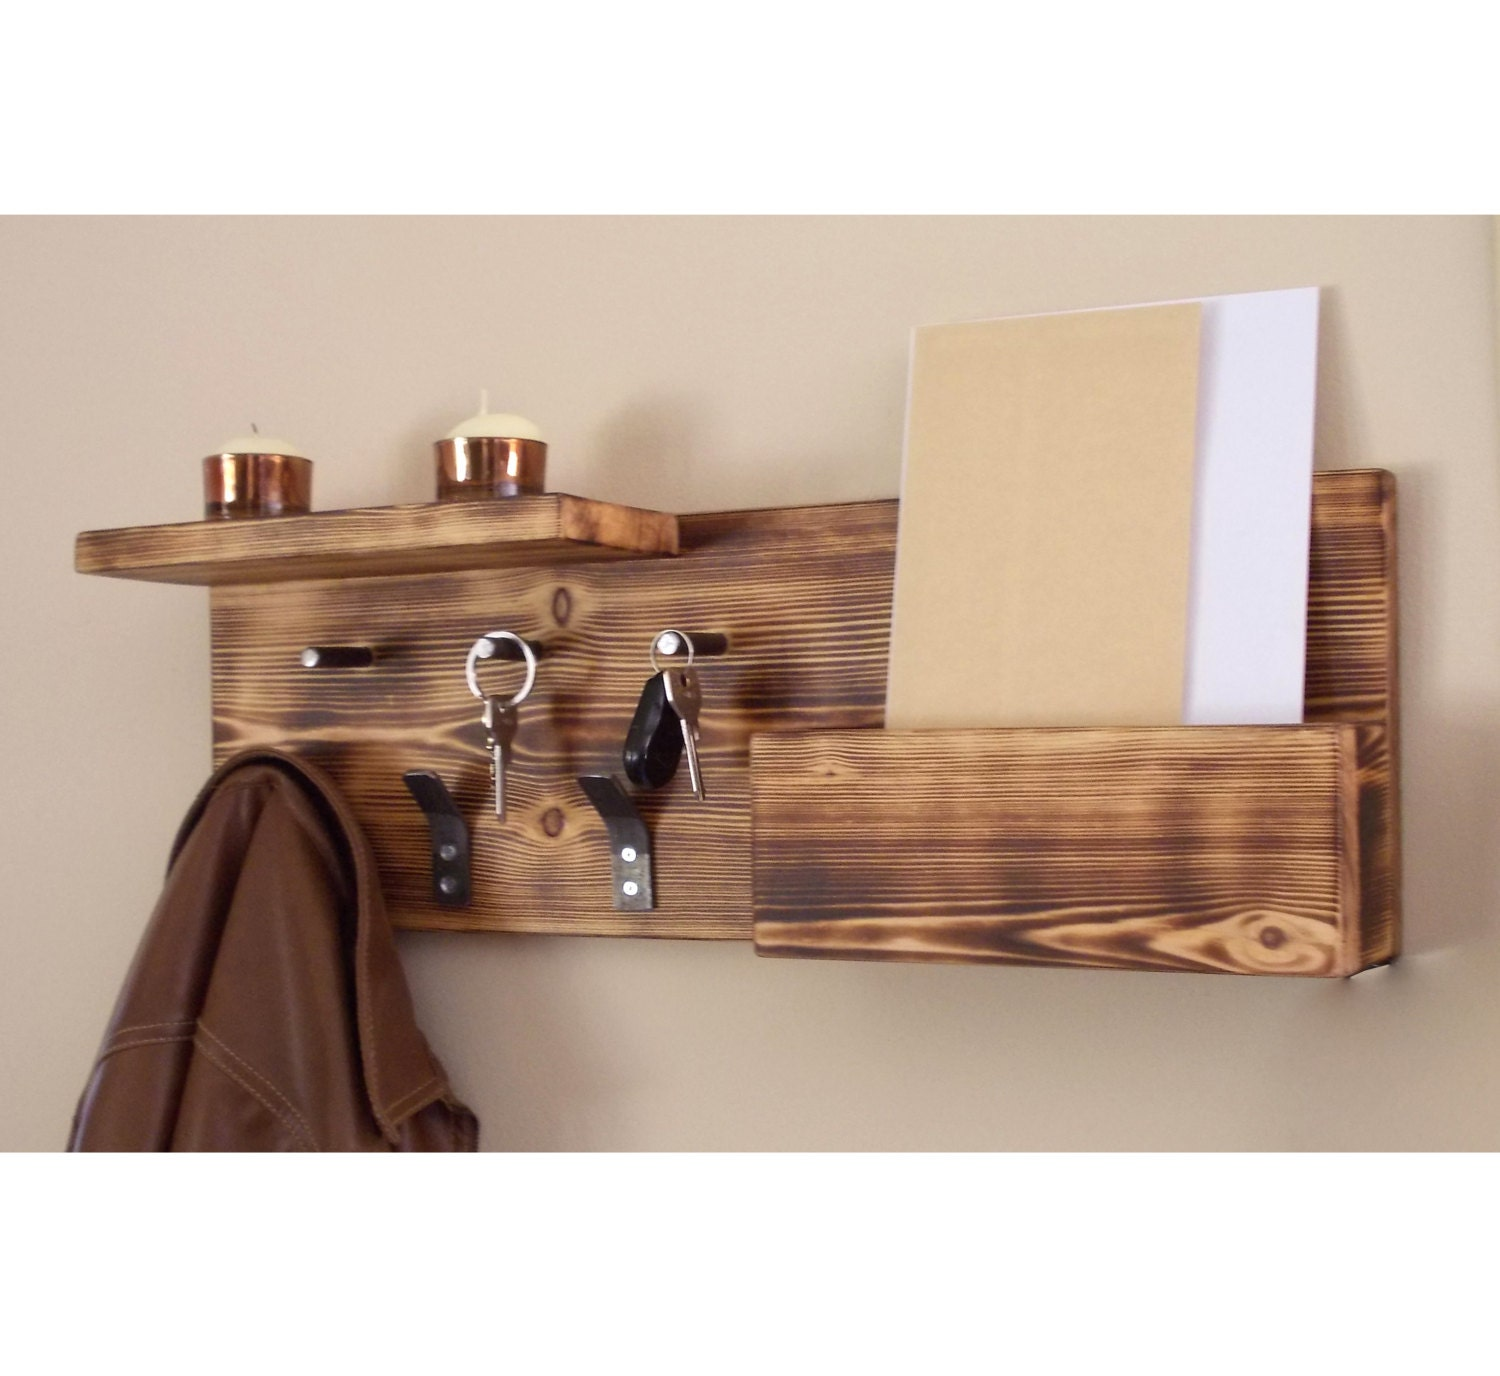 Key Holder Entryway Organizer Mail Organizer Wall Coat Rack